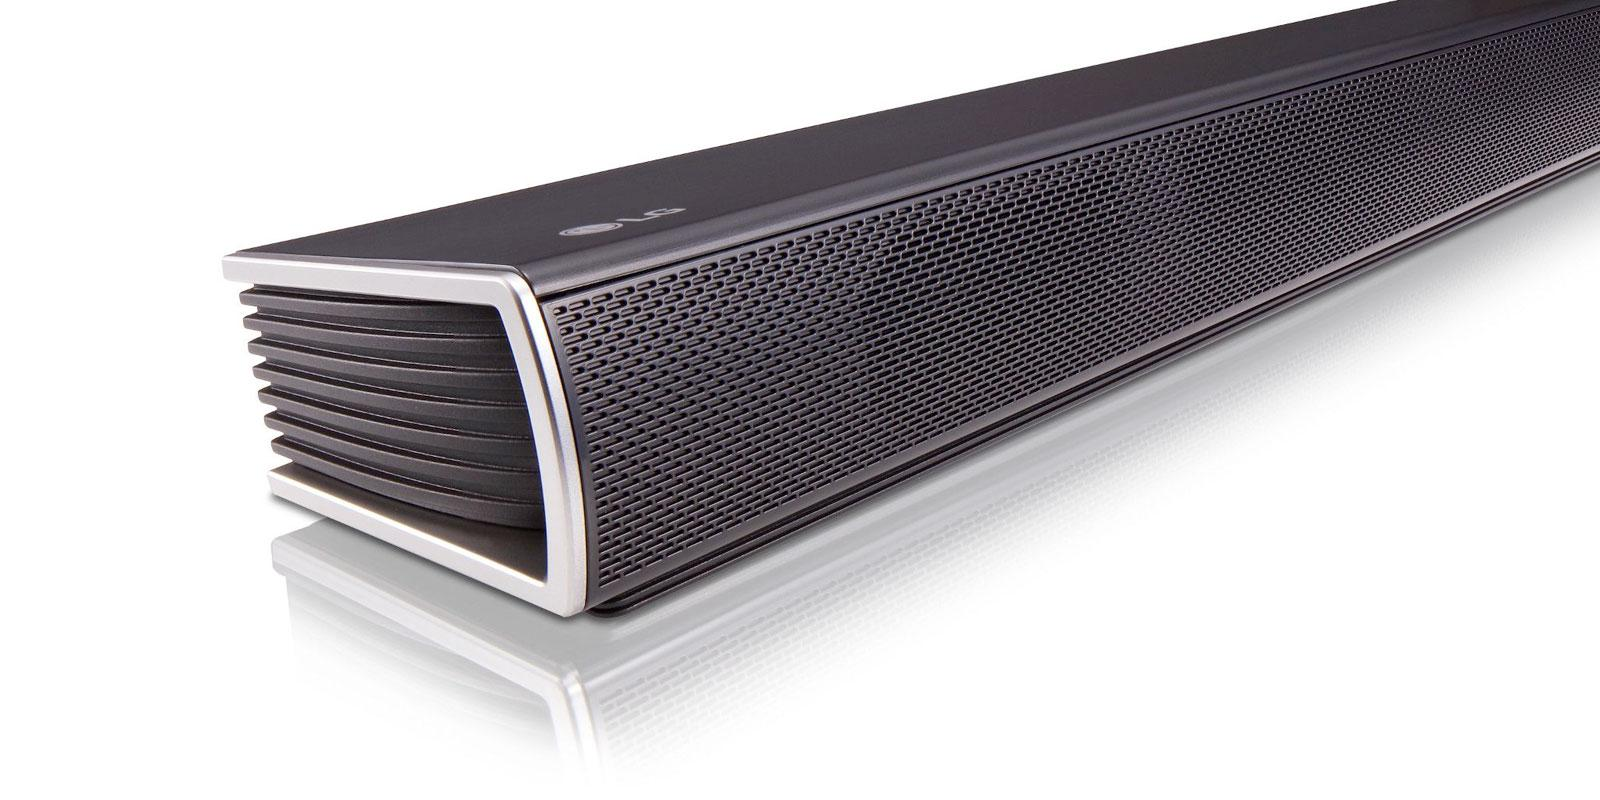 Lg Sh4 21ch 300w Sound Bar With Wireless Subwoofer And Bluetooth Wiring Diagram Wire Svc 2 Ohm Connectivity Usa